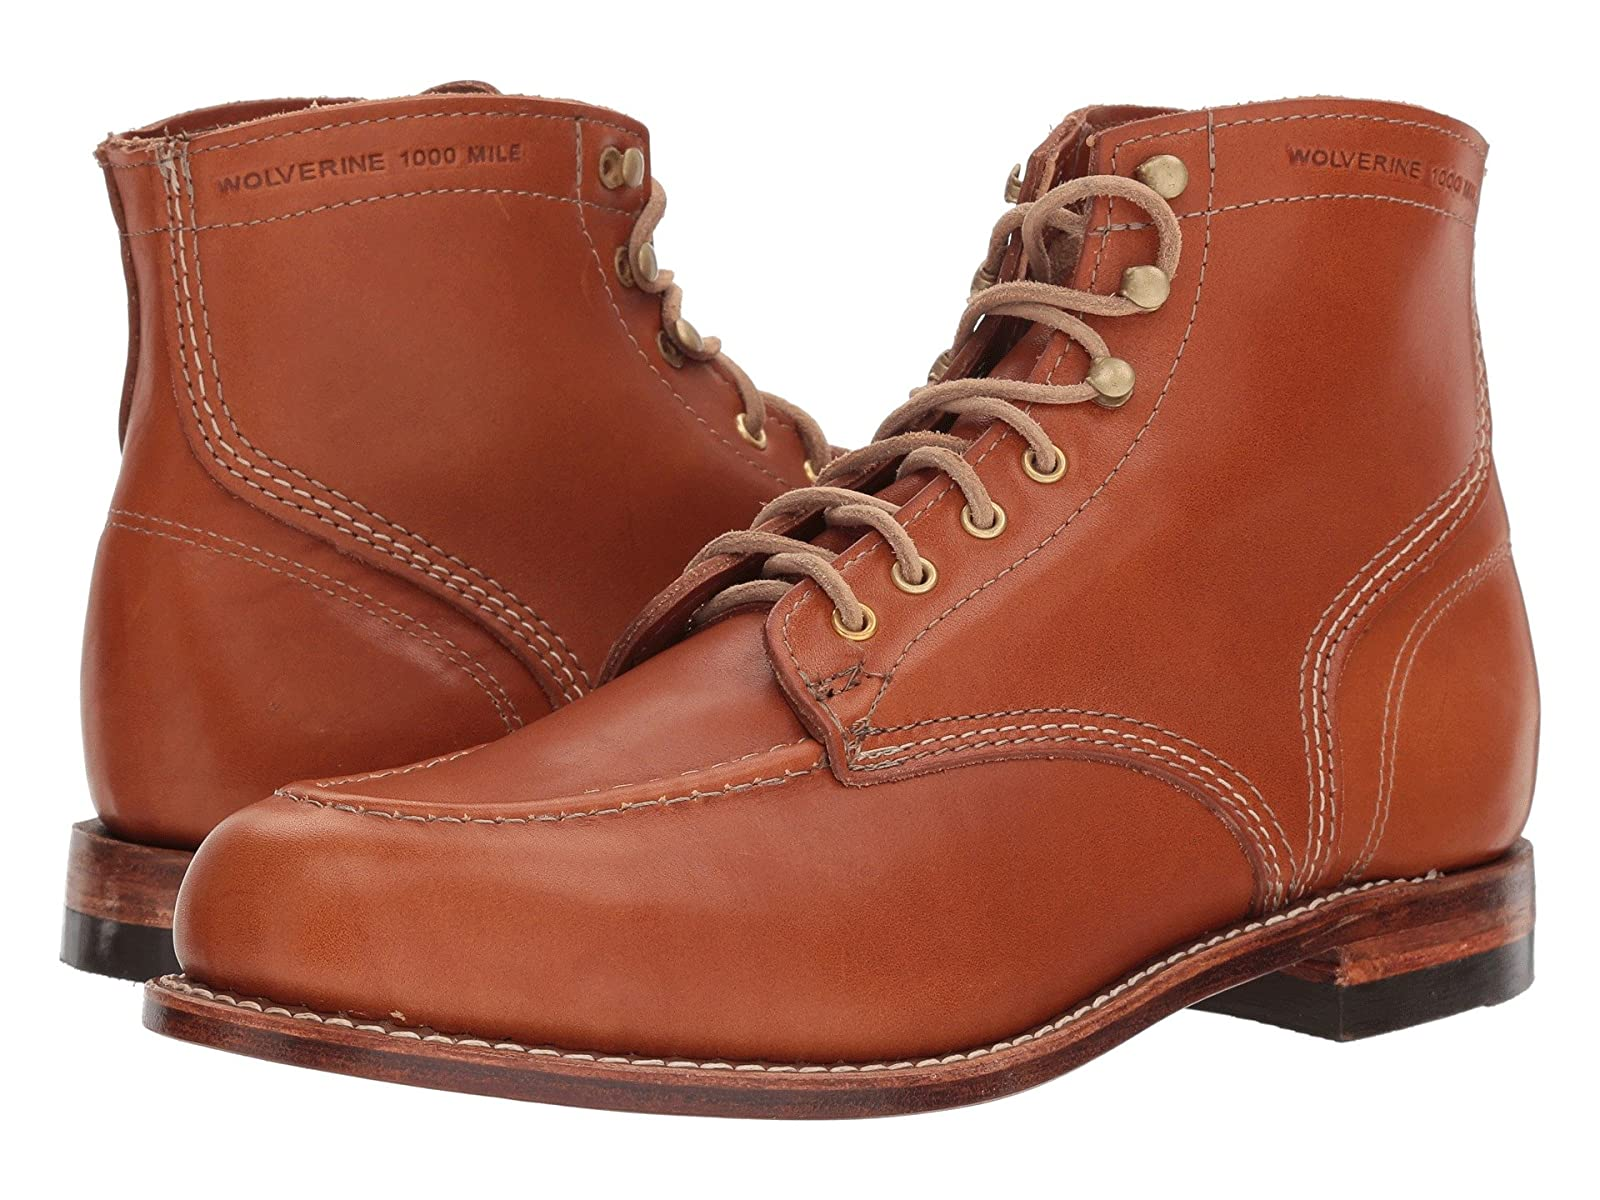 Wolverine 1000 Mile 1940 BootEconomical and quality shoes